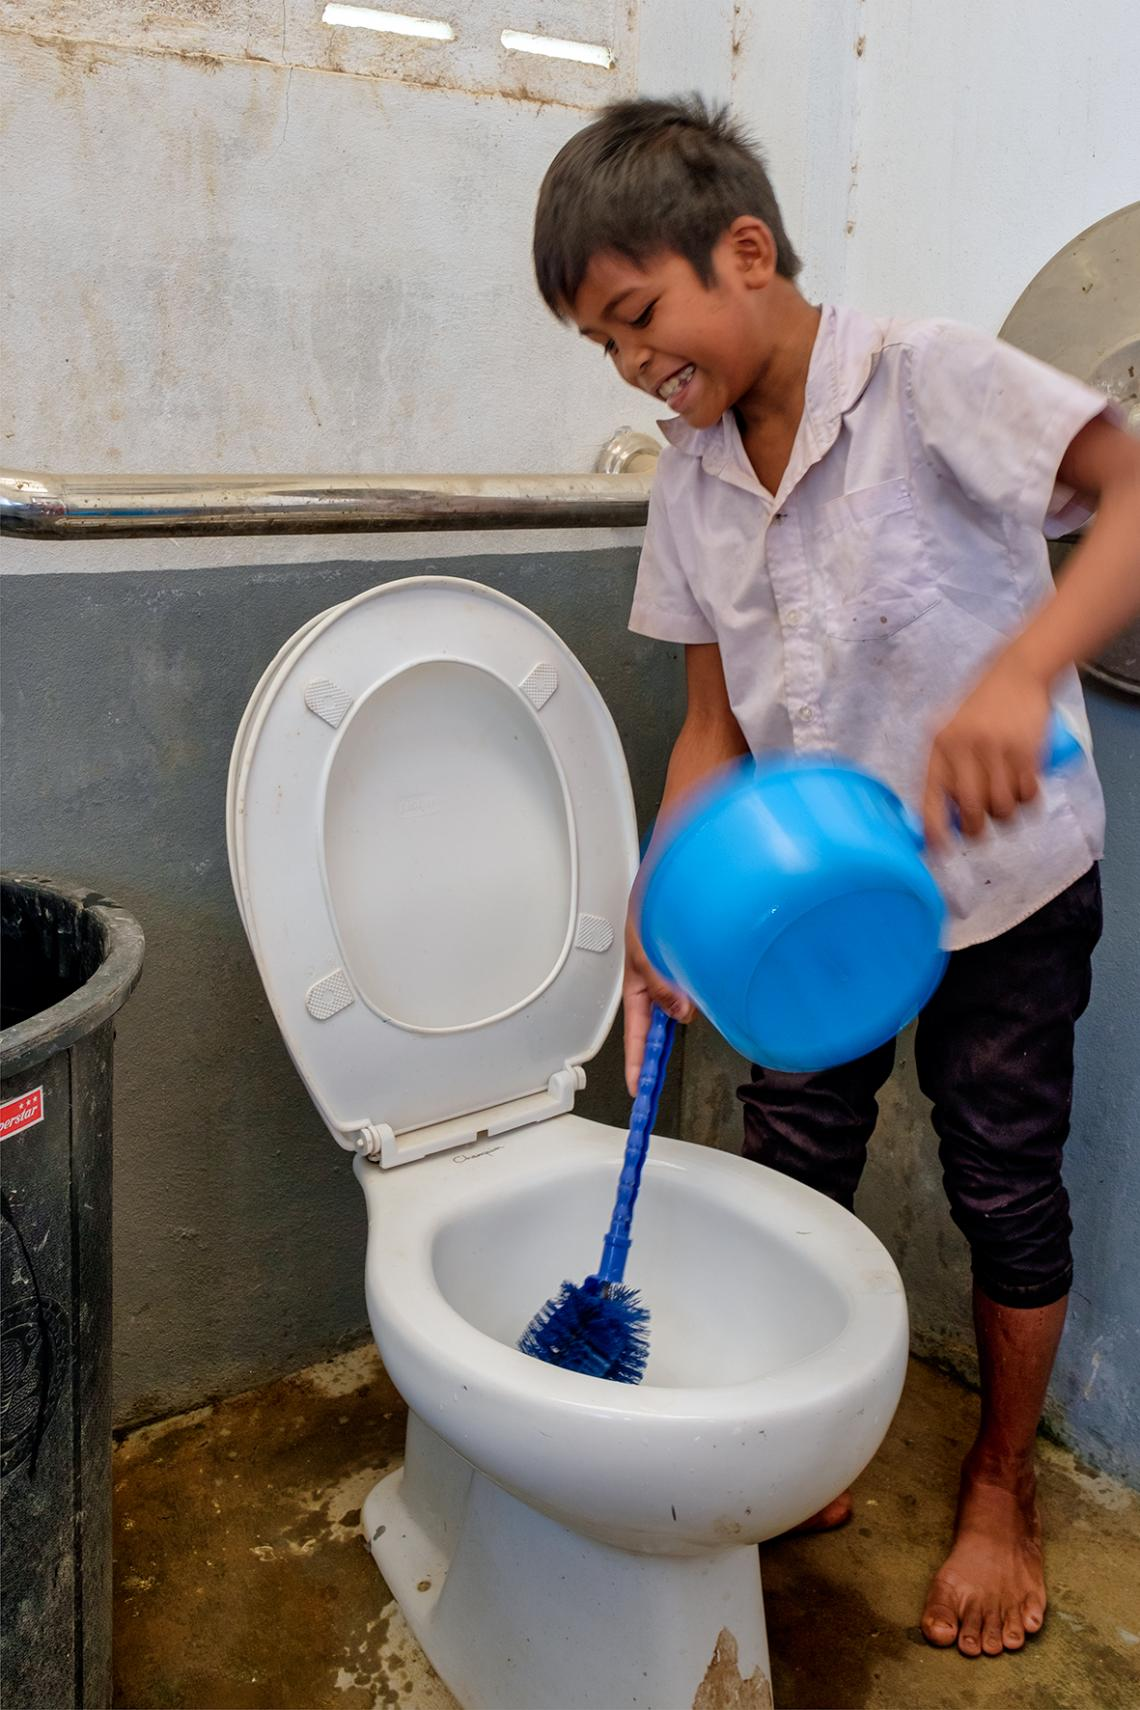 As part of Hygiene Actions led by Pupils in Schools (HAPiS) Toh is cleaning one of the toilets at his school.